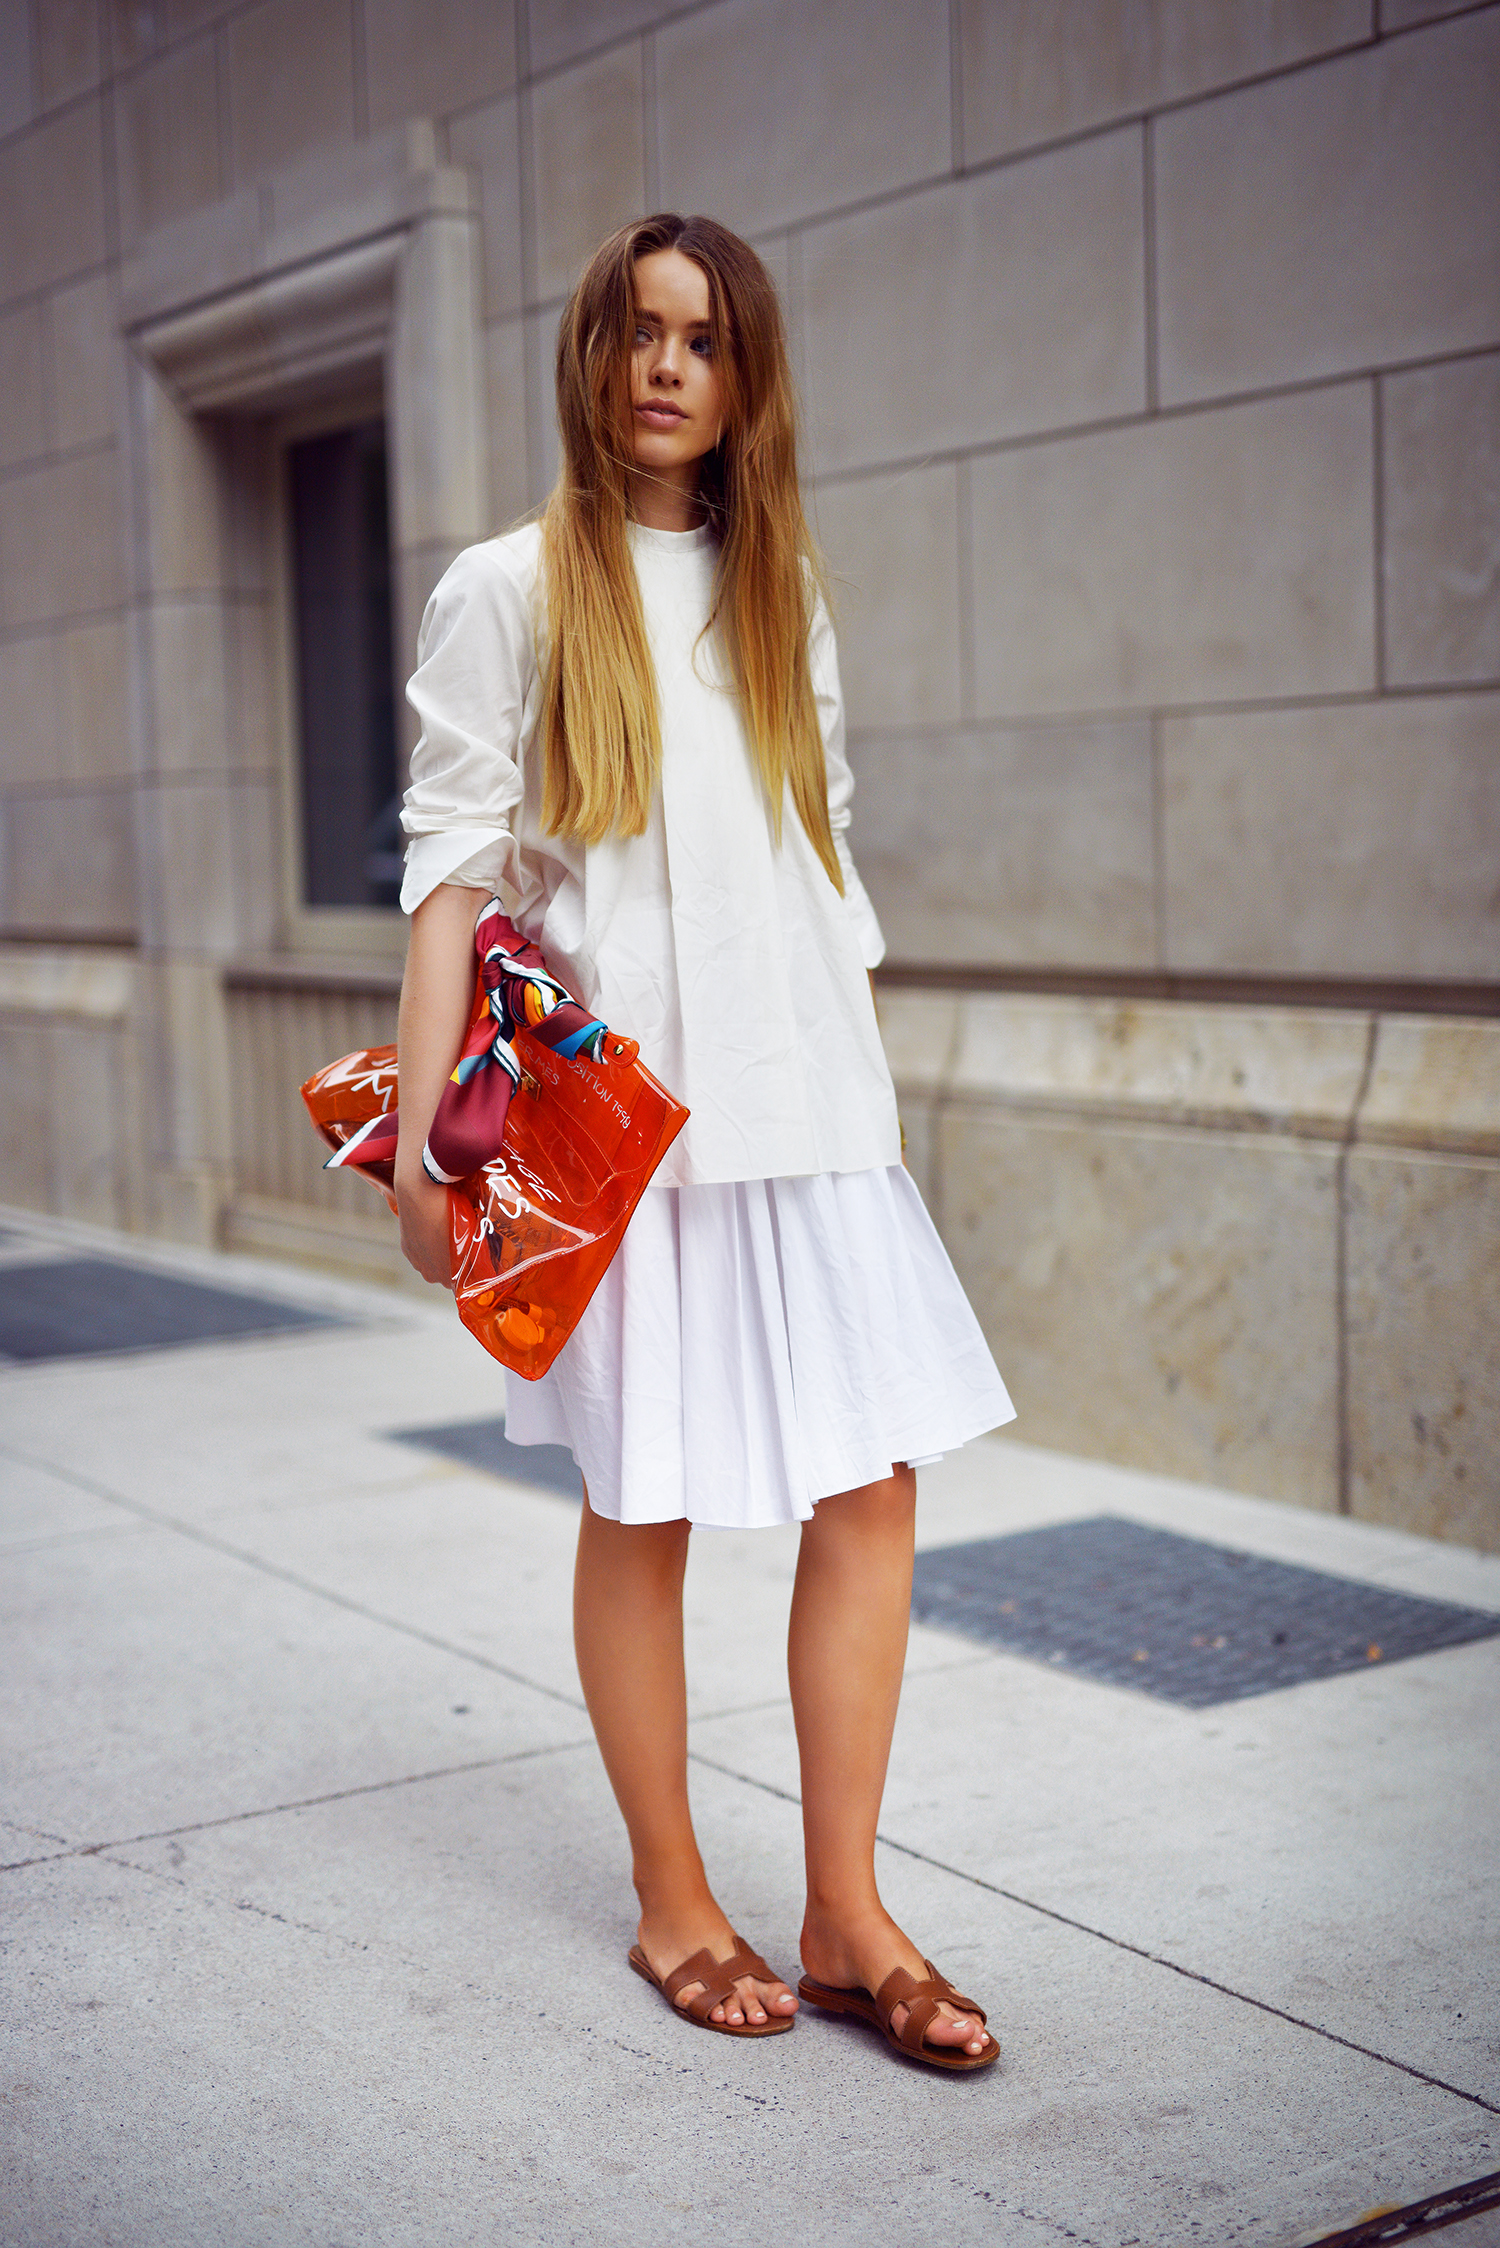 Kristina Bazan is wearing a white top, bag and shoes from Hermès, white skirt from Tara Jarmon